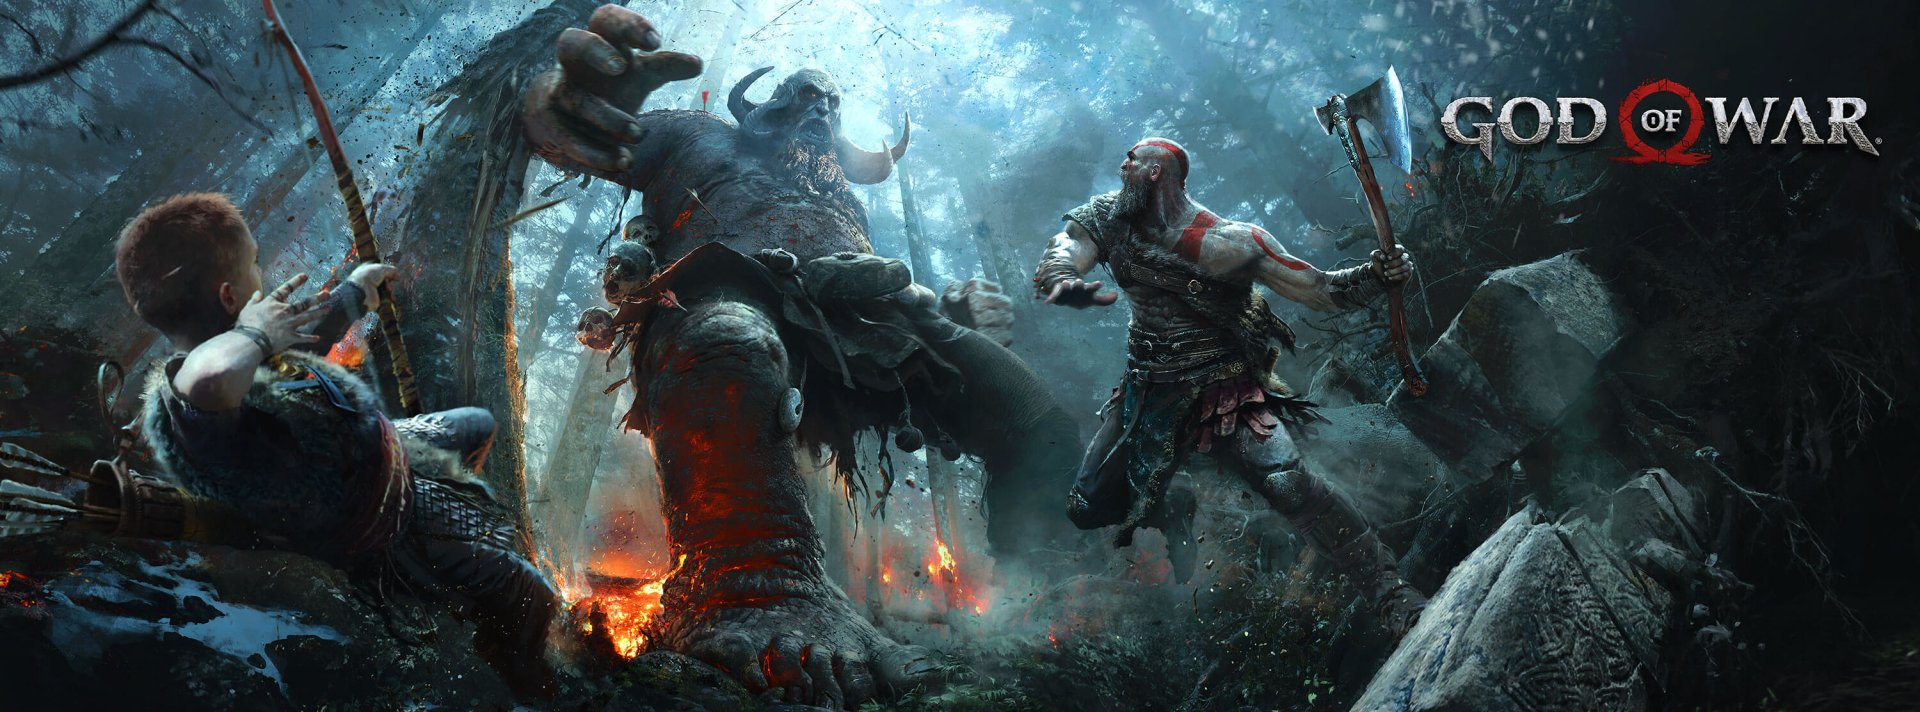 76 God Of War 2018 Hd Wallpapers Background Images Wallpaper Abyss